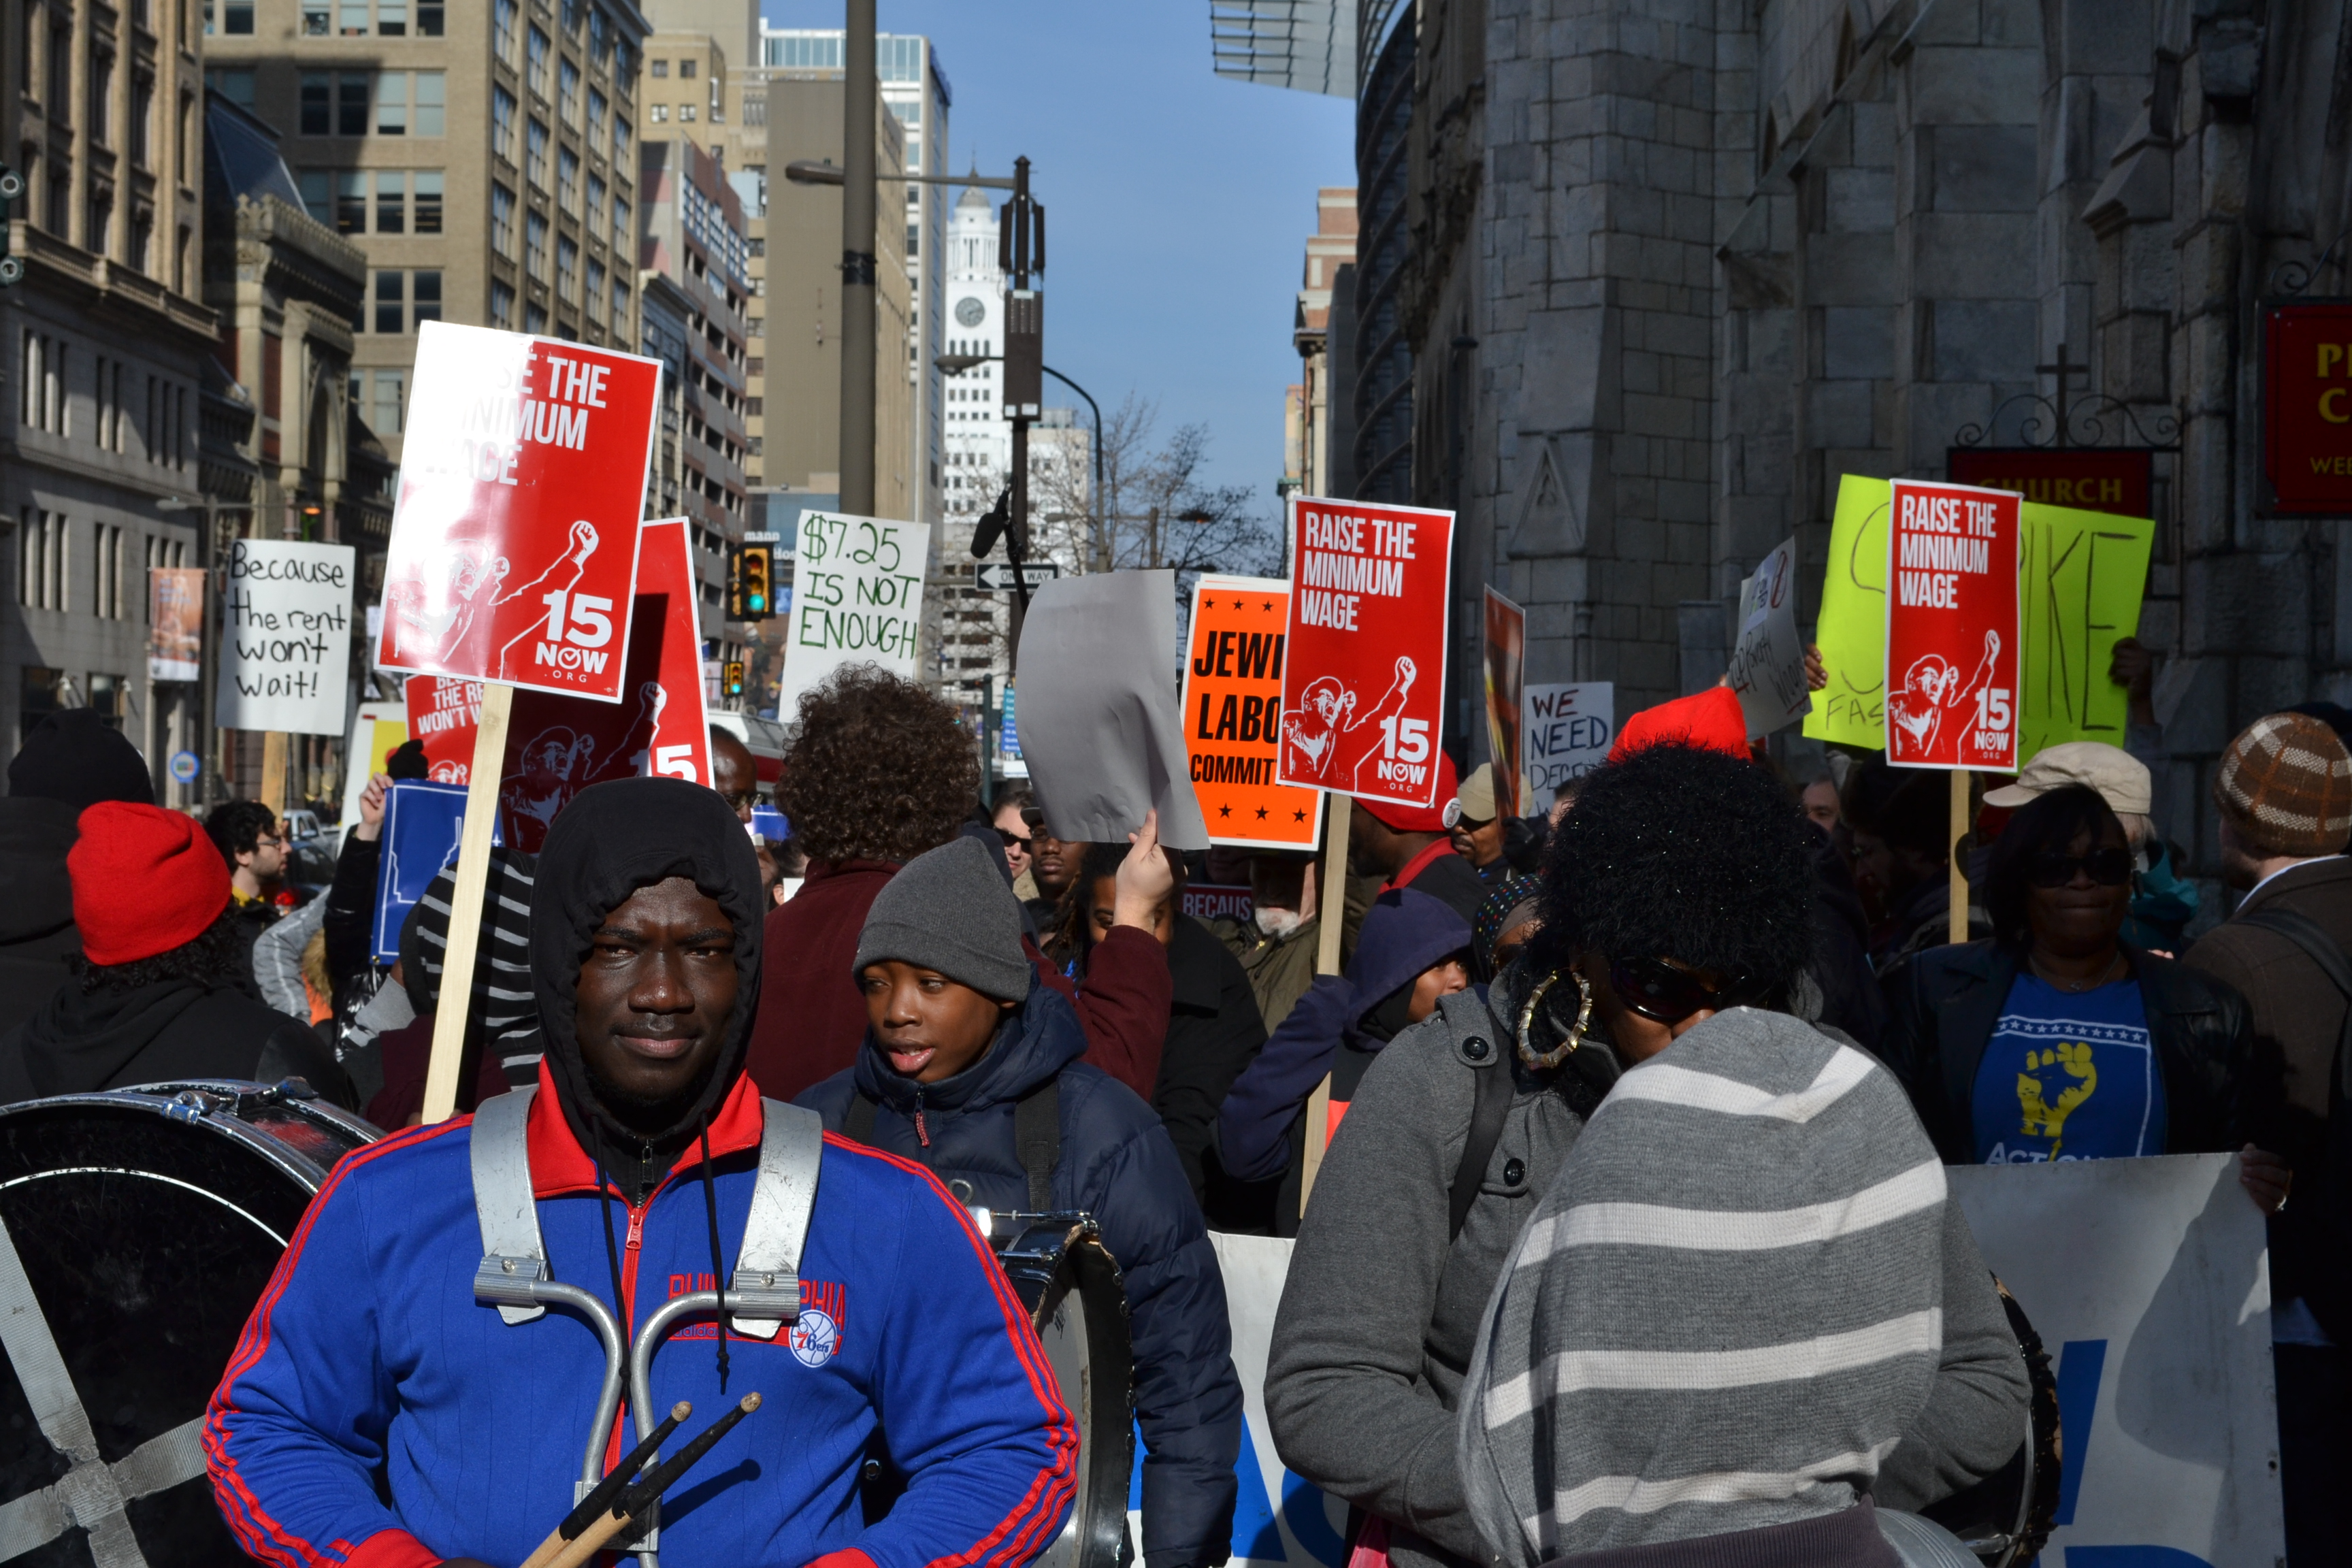 Marching for a Living Wage - December 2014